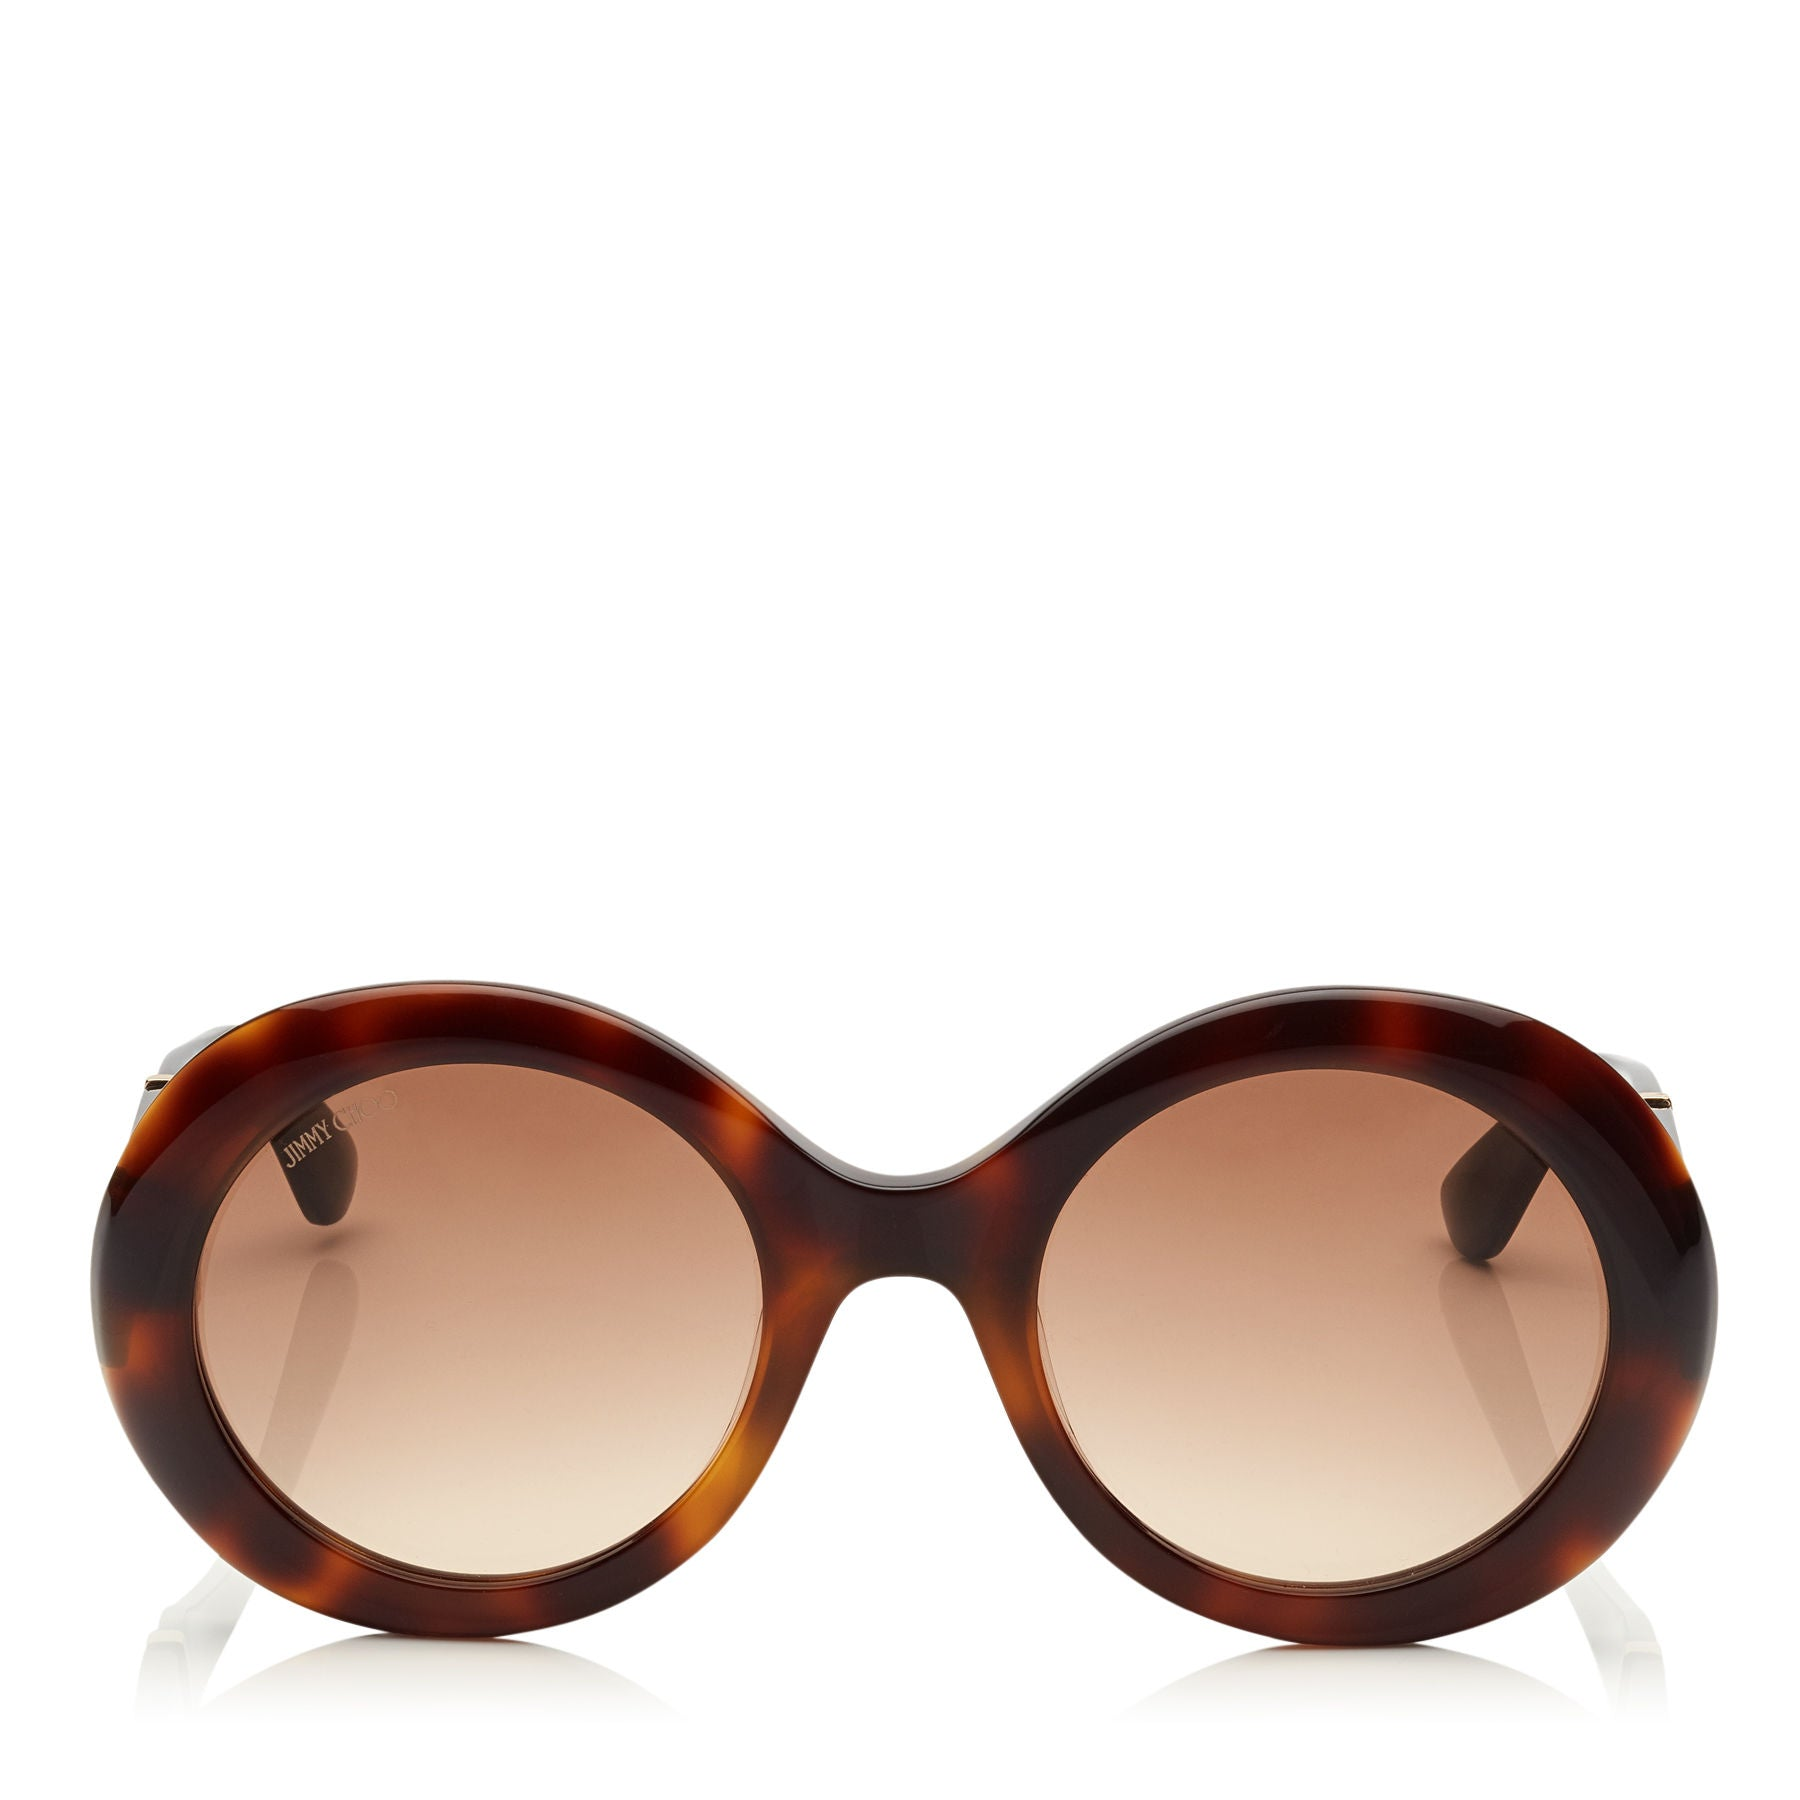 JIMMY CHOO Wendy Havana Round Sunglasses with Lurex Detailing ITEM NO. WENDYS51E16Y